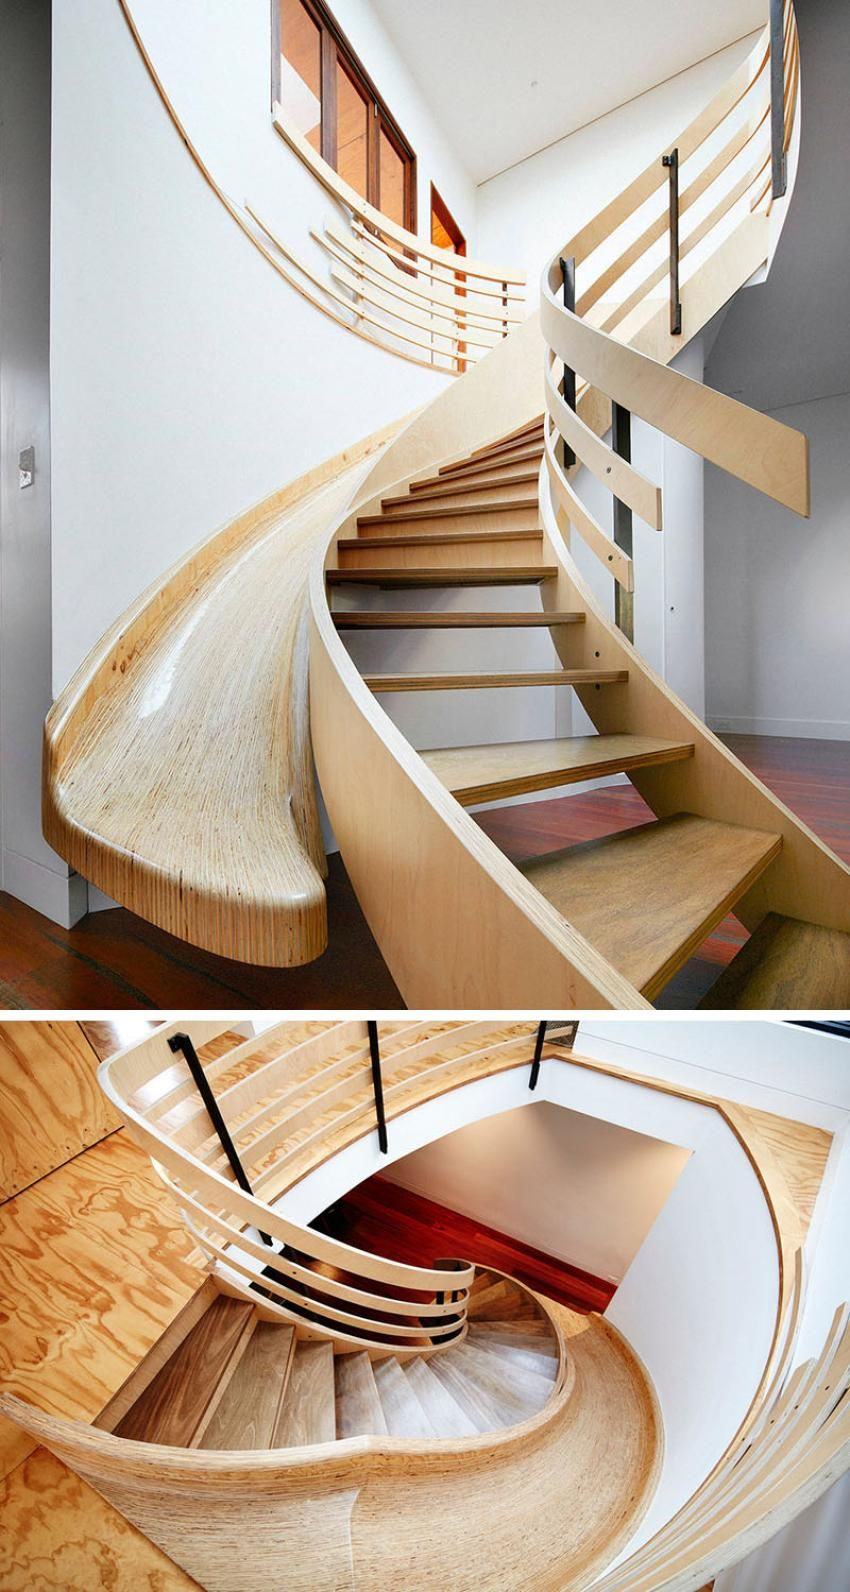 Modern unique homes indoor slides as a fun way to travel between